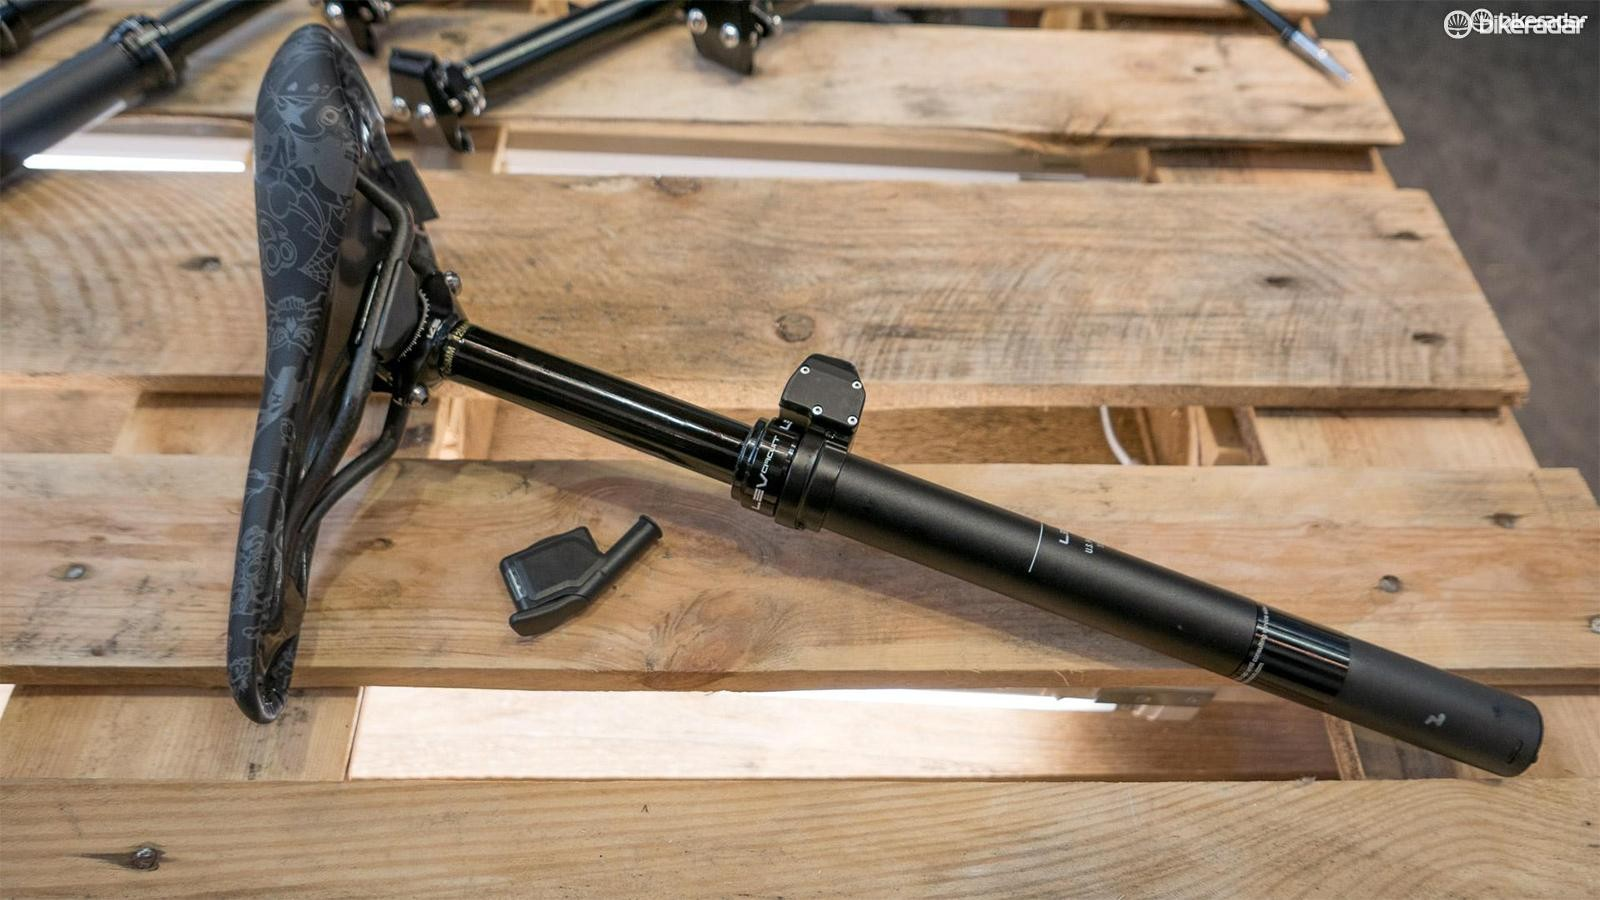 The KS Lev Circuit is the company's first attempt at a wireless dropper seatpost